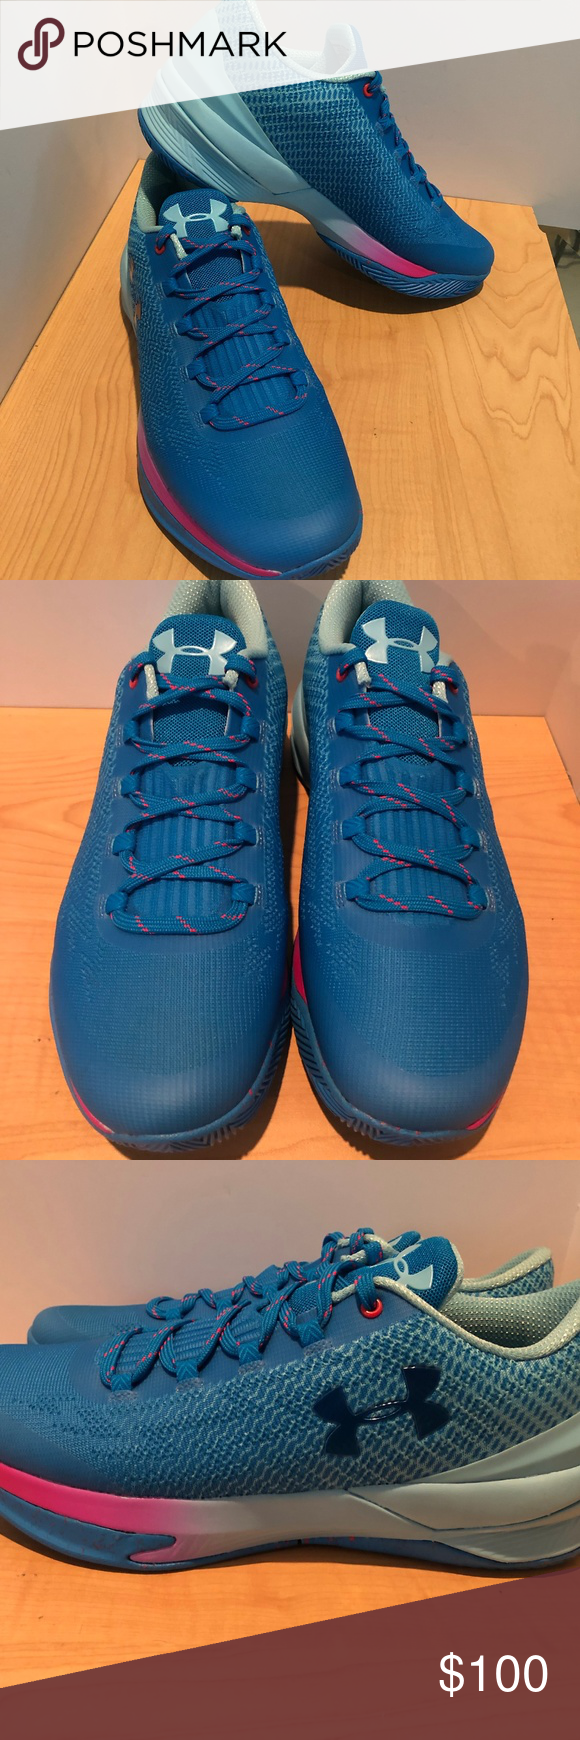 Under Armour Charged Controller UAA